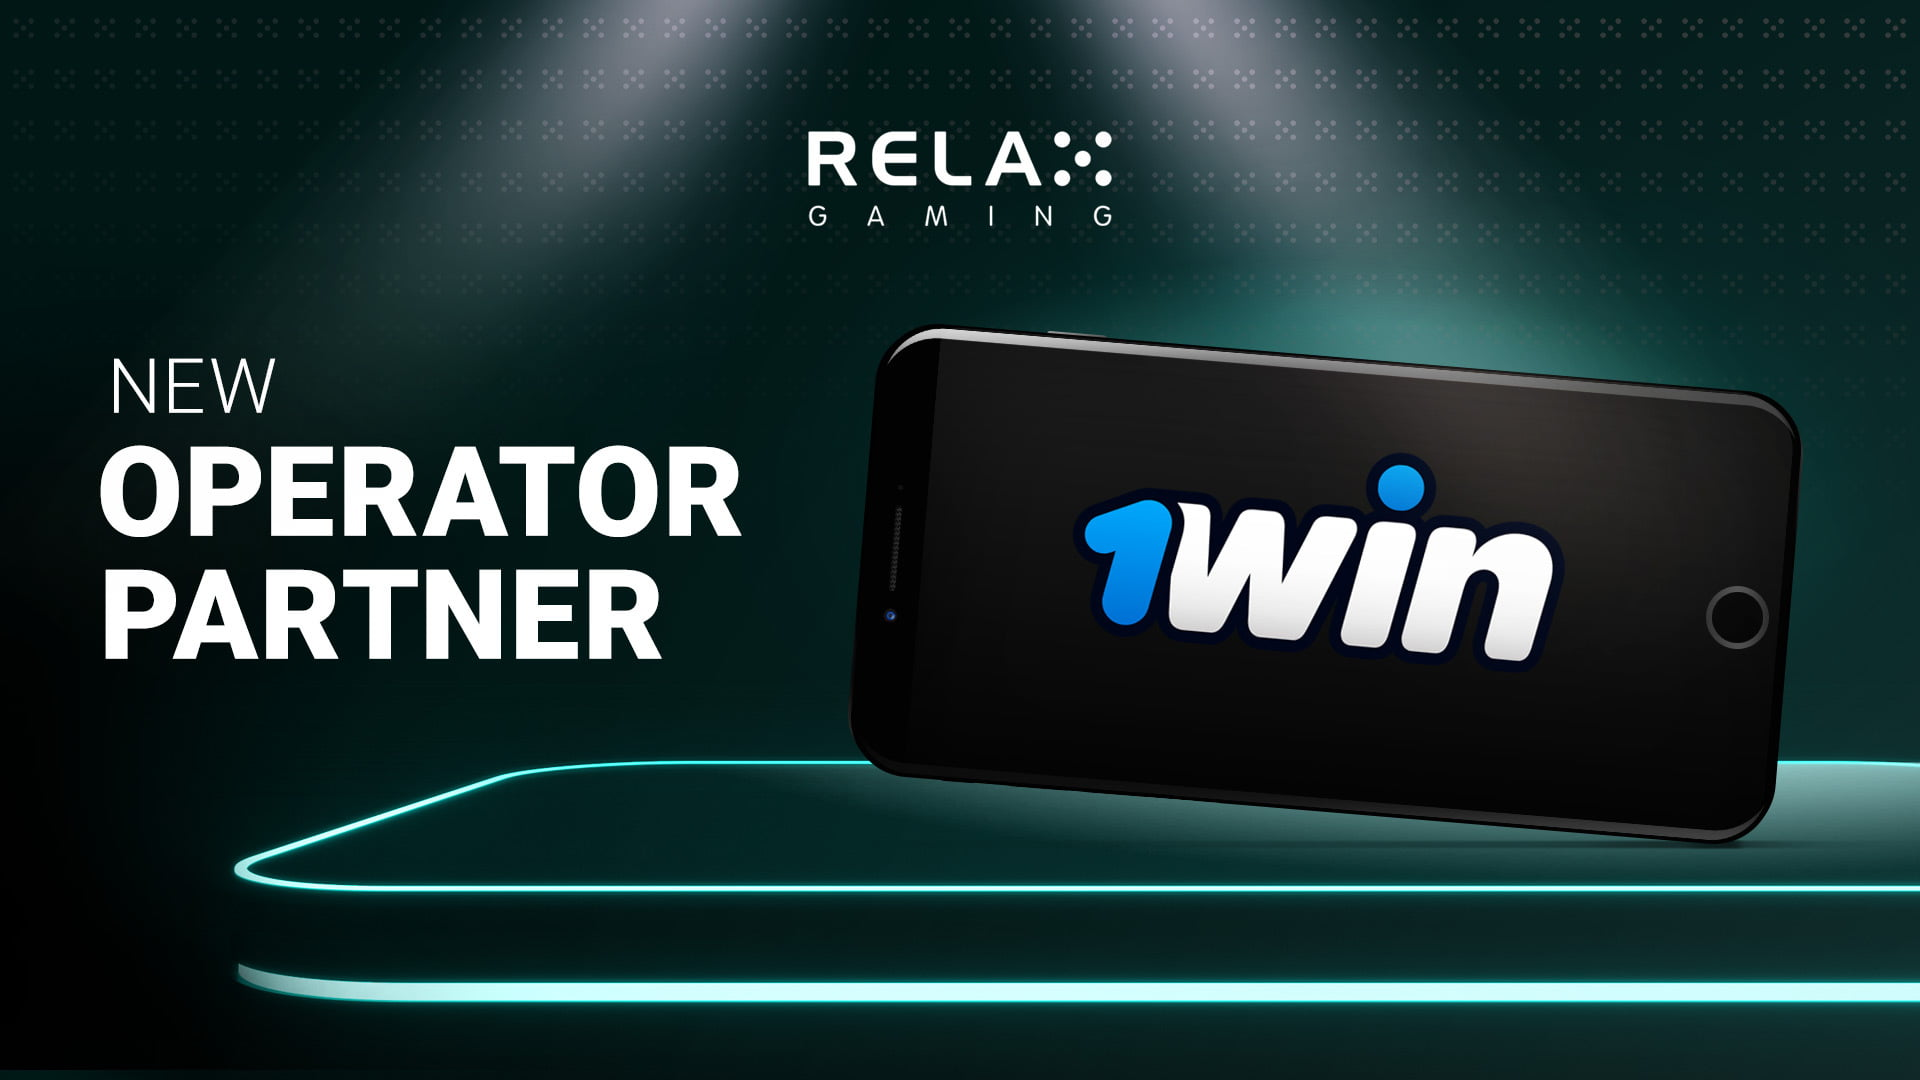 Relax Enters Content Distribution Deal With 1win